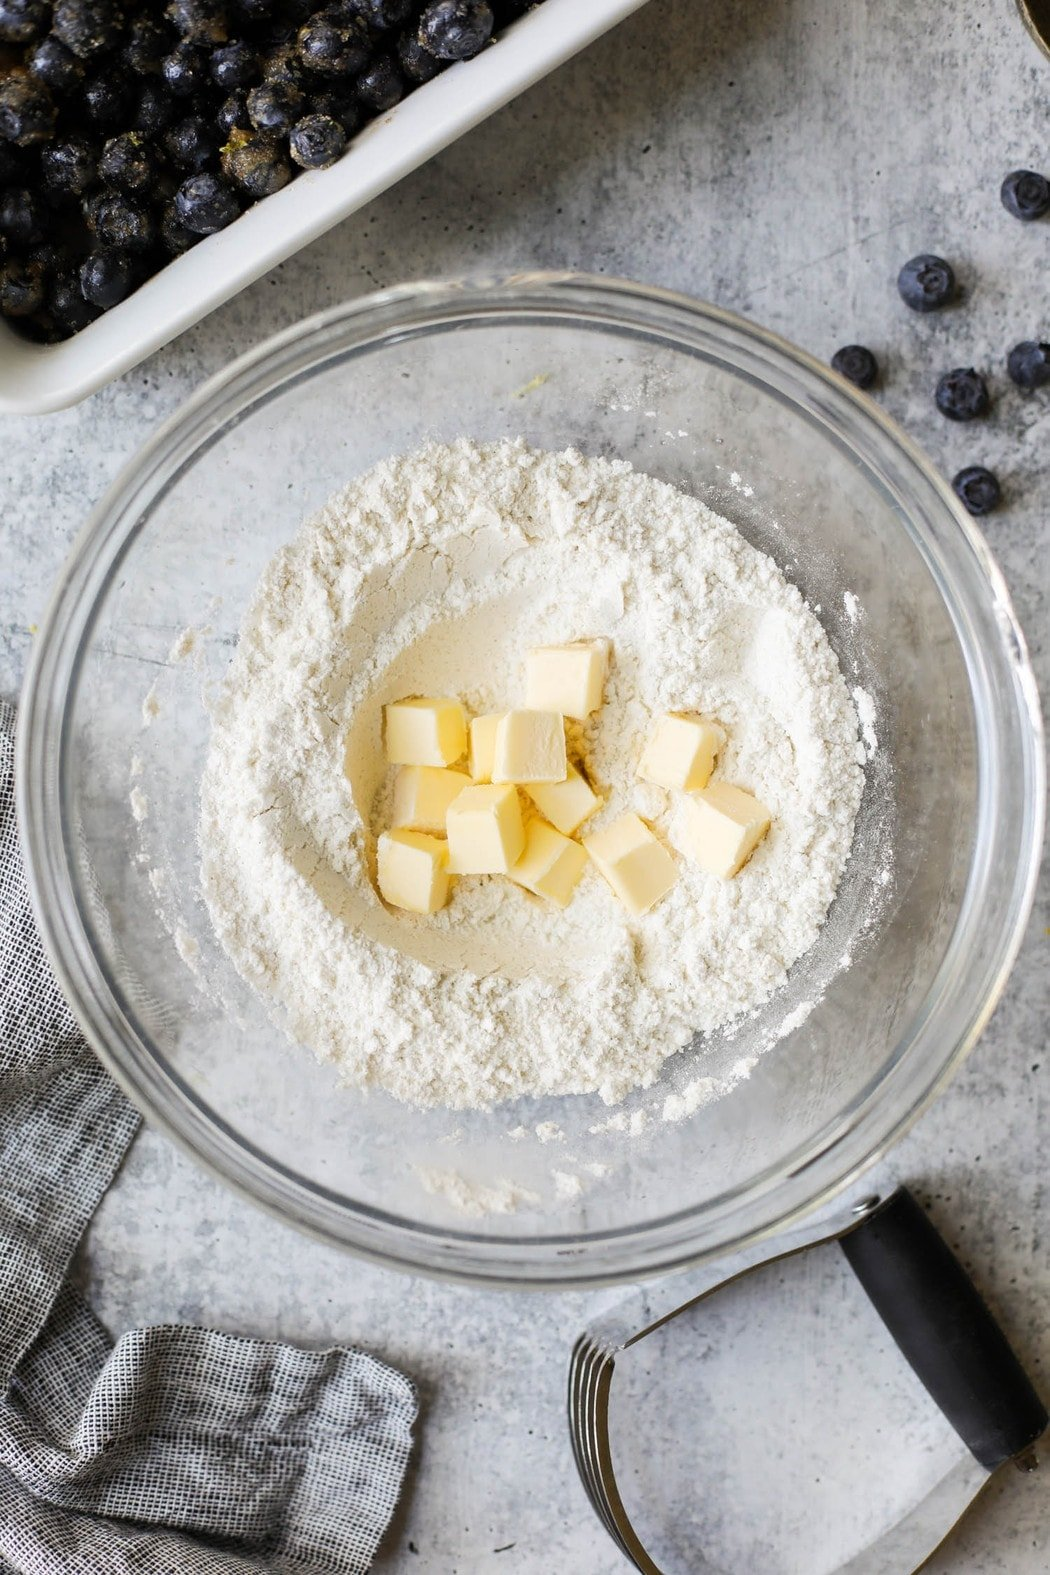 Ingredients for gluten-free biscuits in a mixing bowl